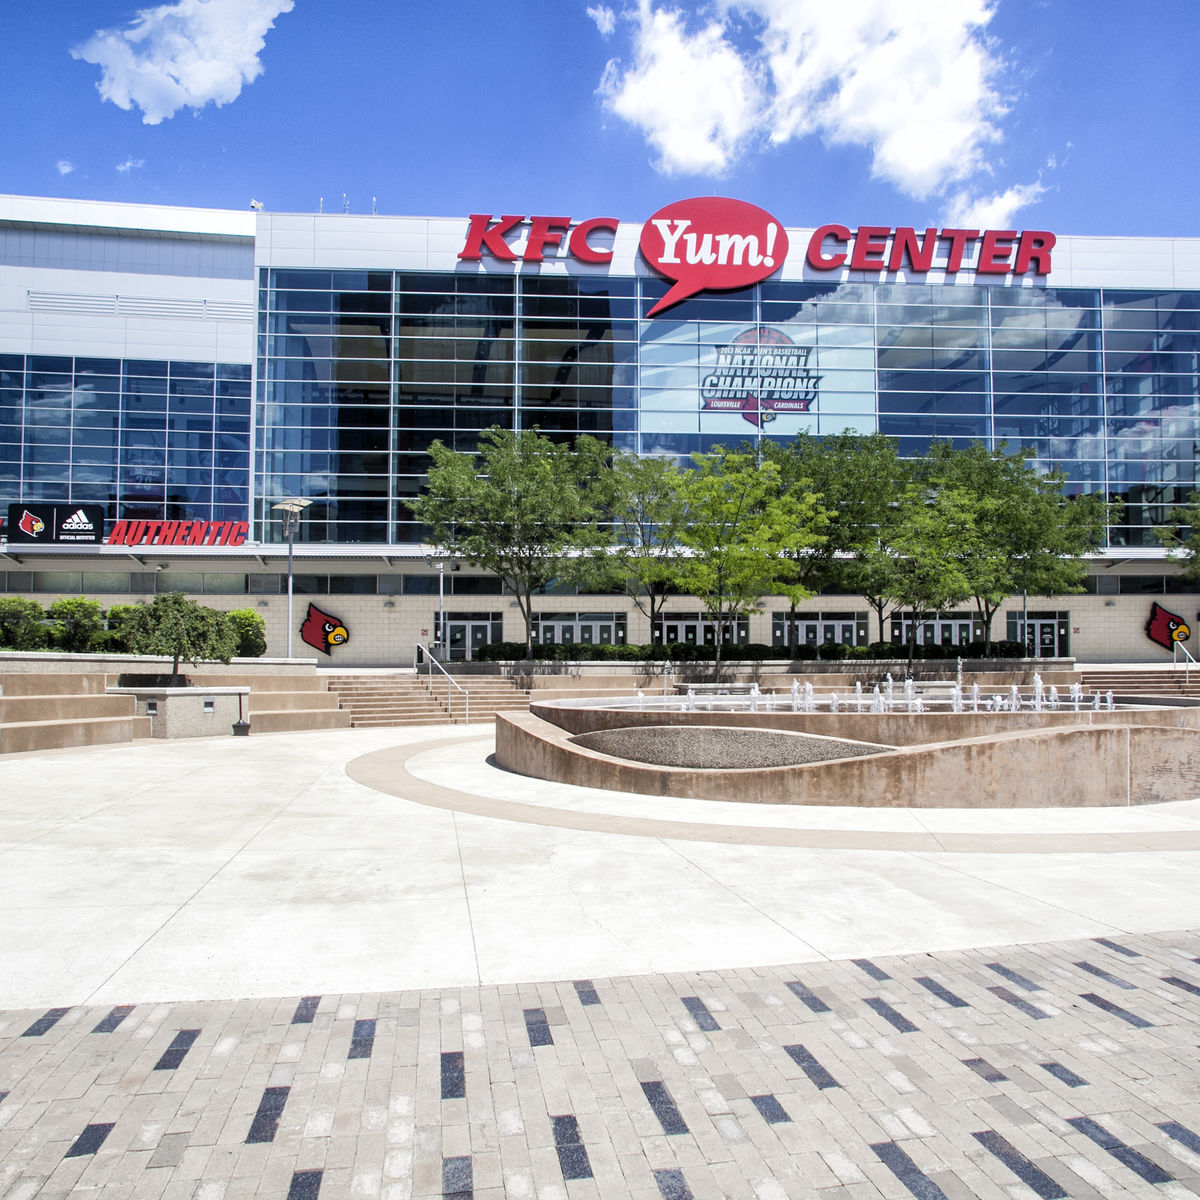 Exterior Image of KFC Yum! Center